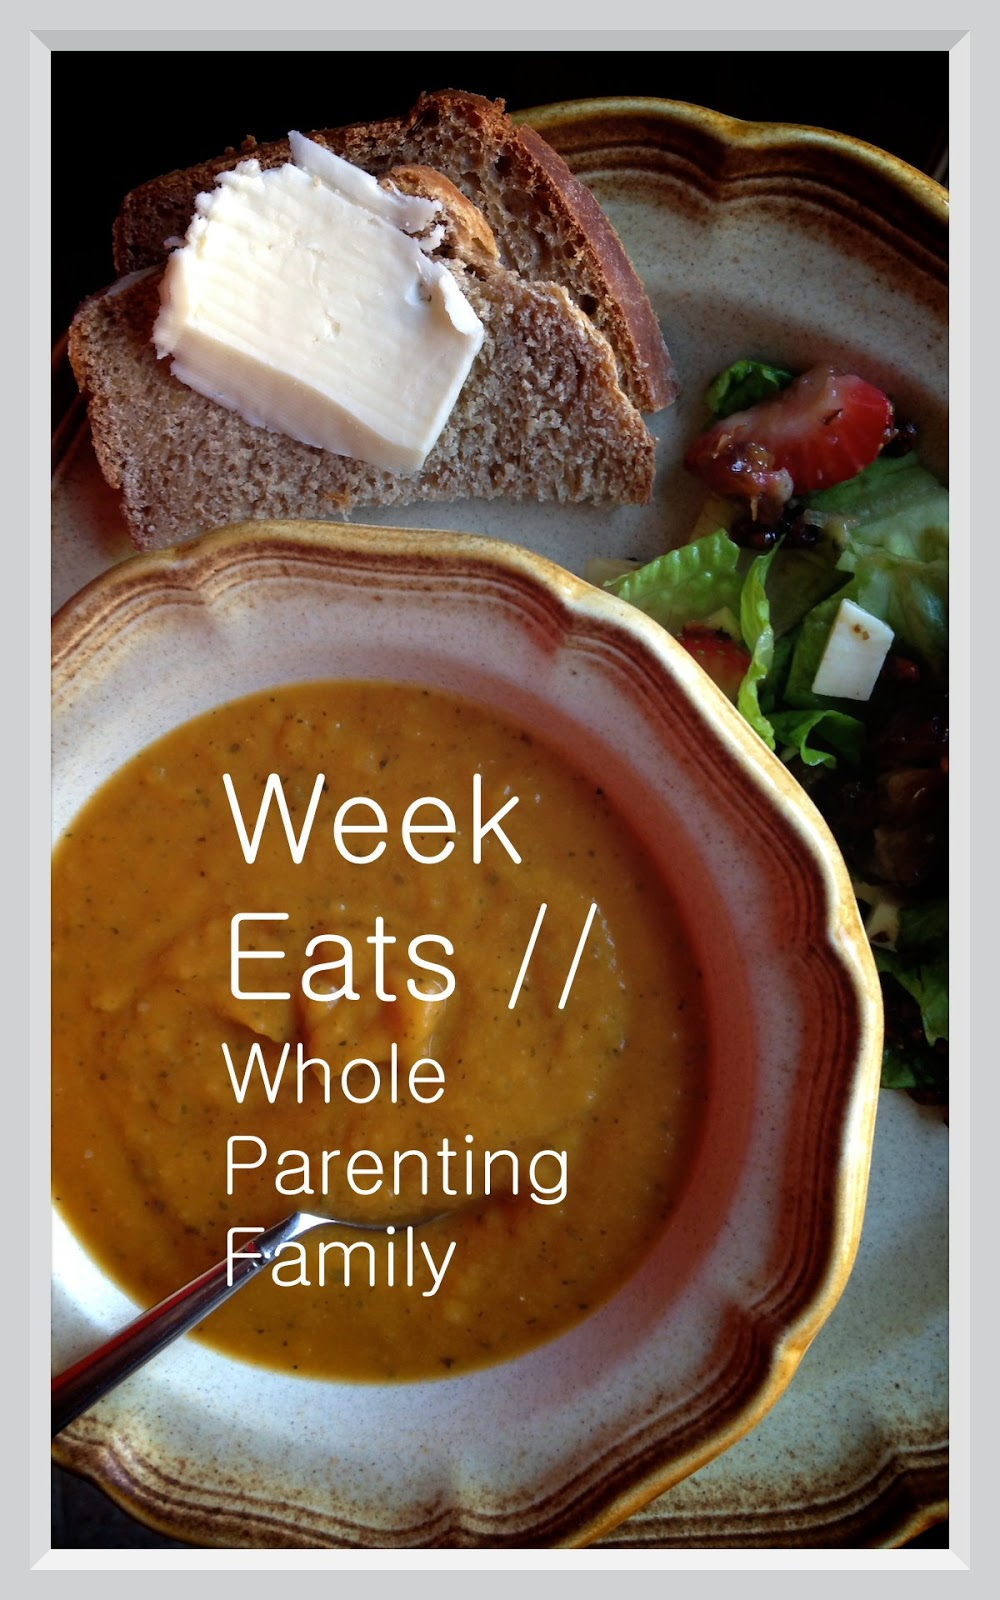 http://www.wholeparentingfamily.com/2014/10/25/week-eats-saturday-linkup-comment-up-food-meal-planning/